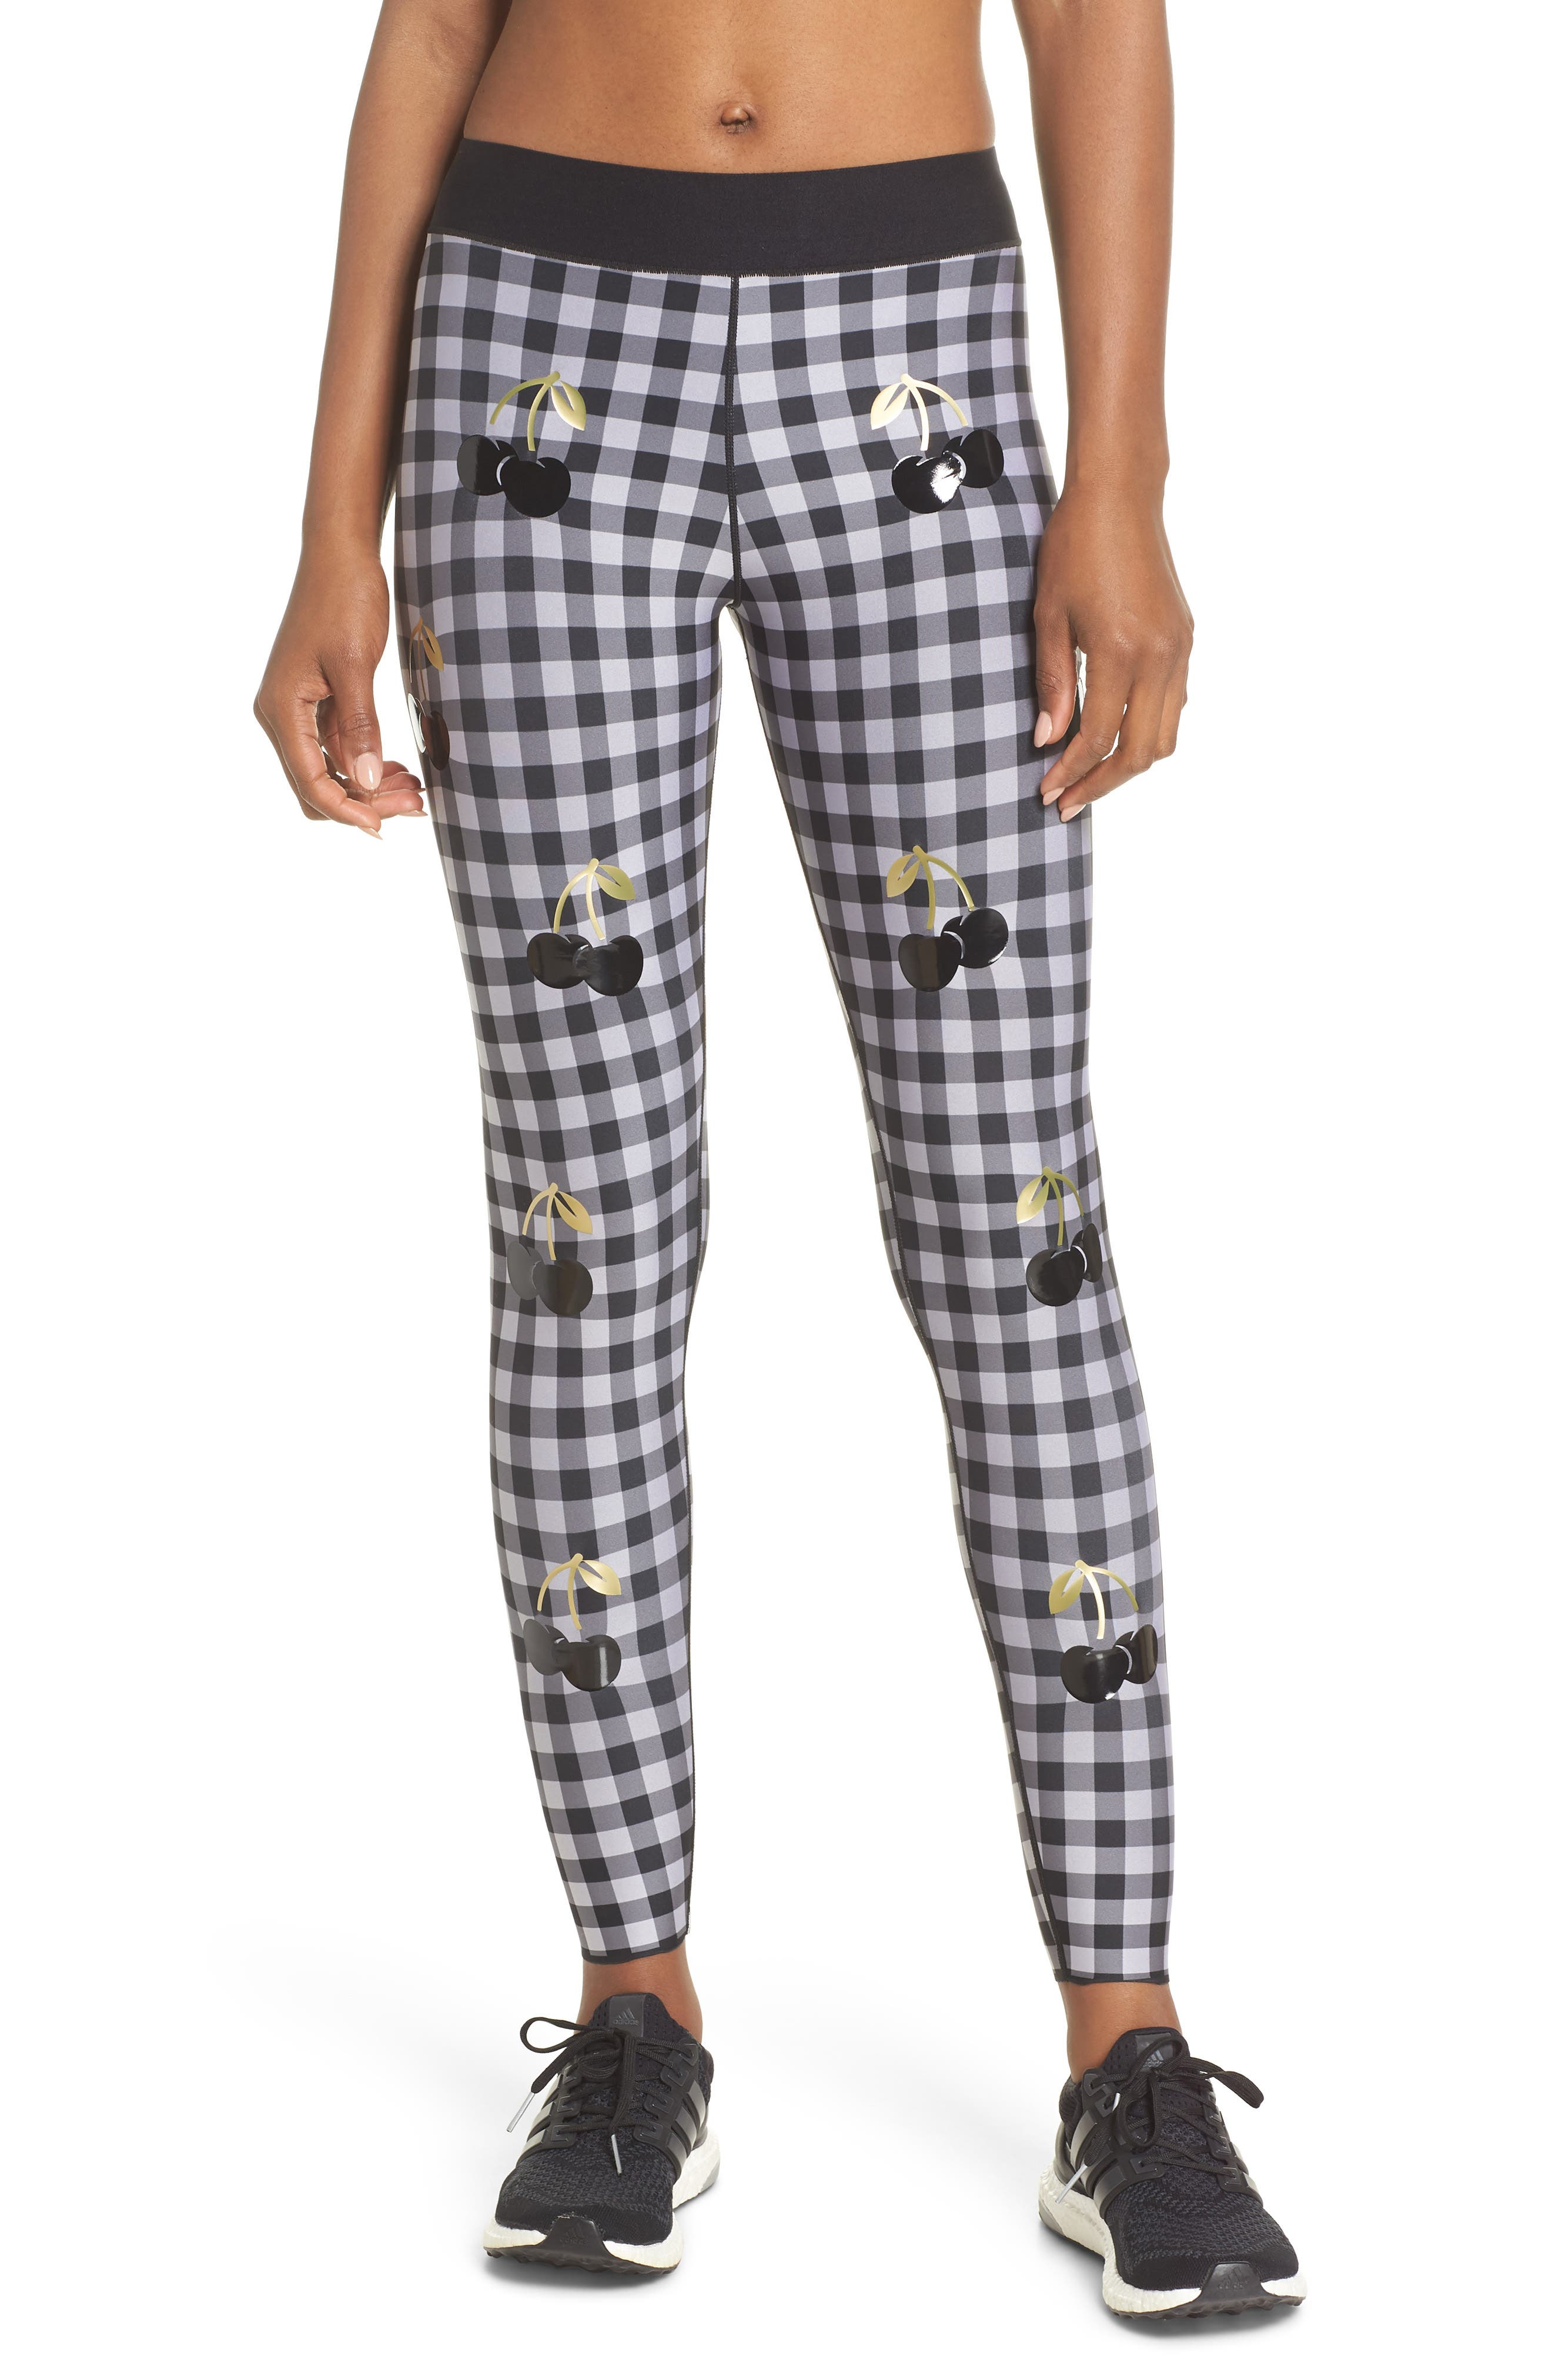 Ultra Cherry Check Leggings,                             Main thumbnail 1, color,                             Nero/ Patent Nero